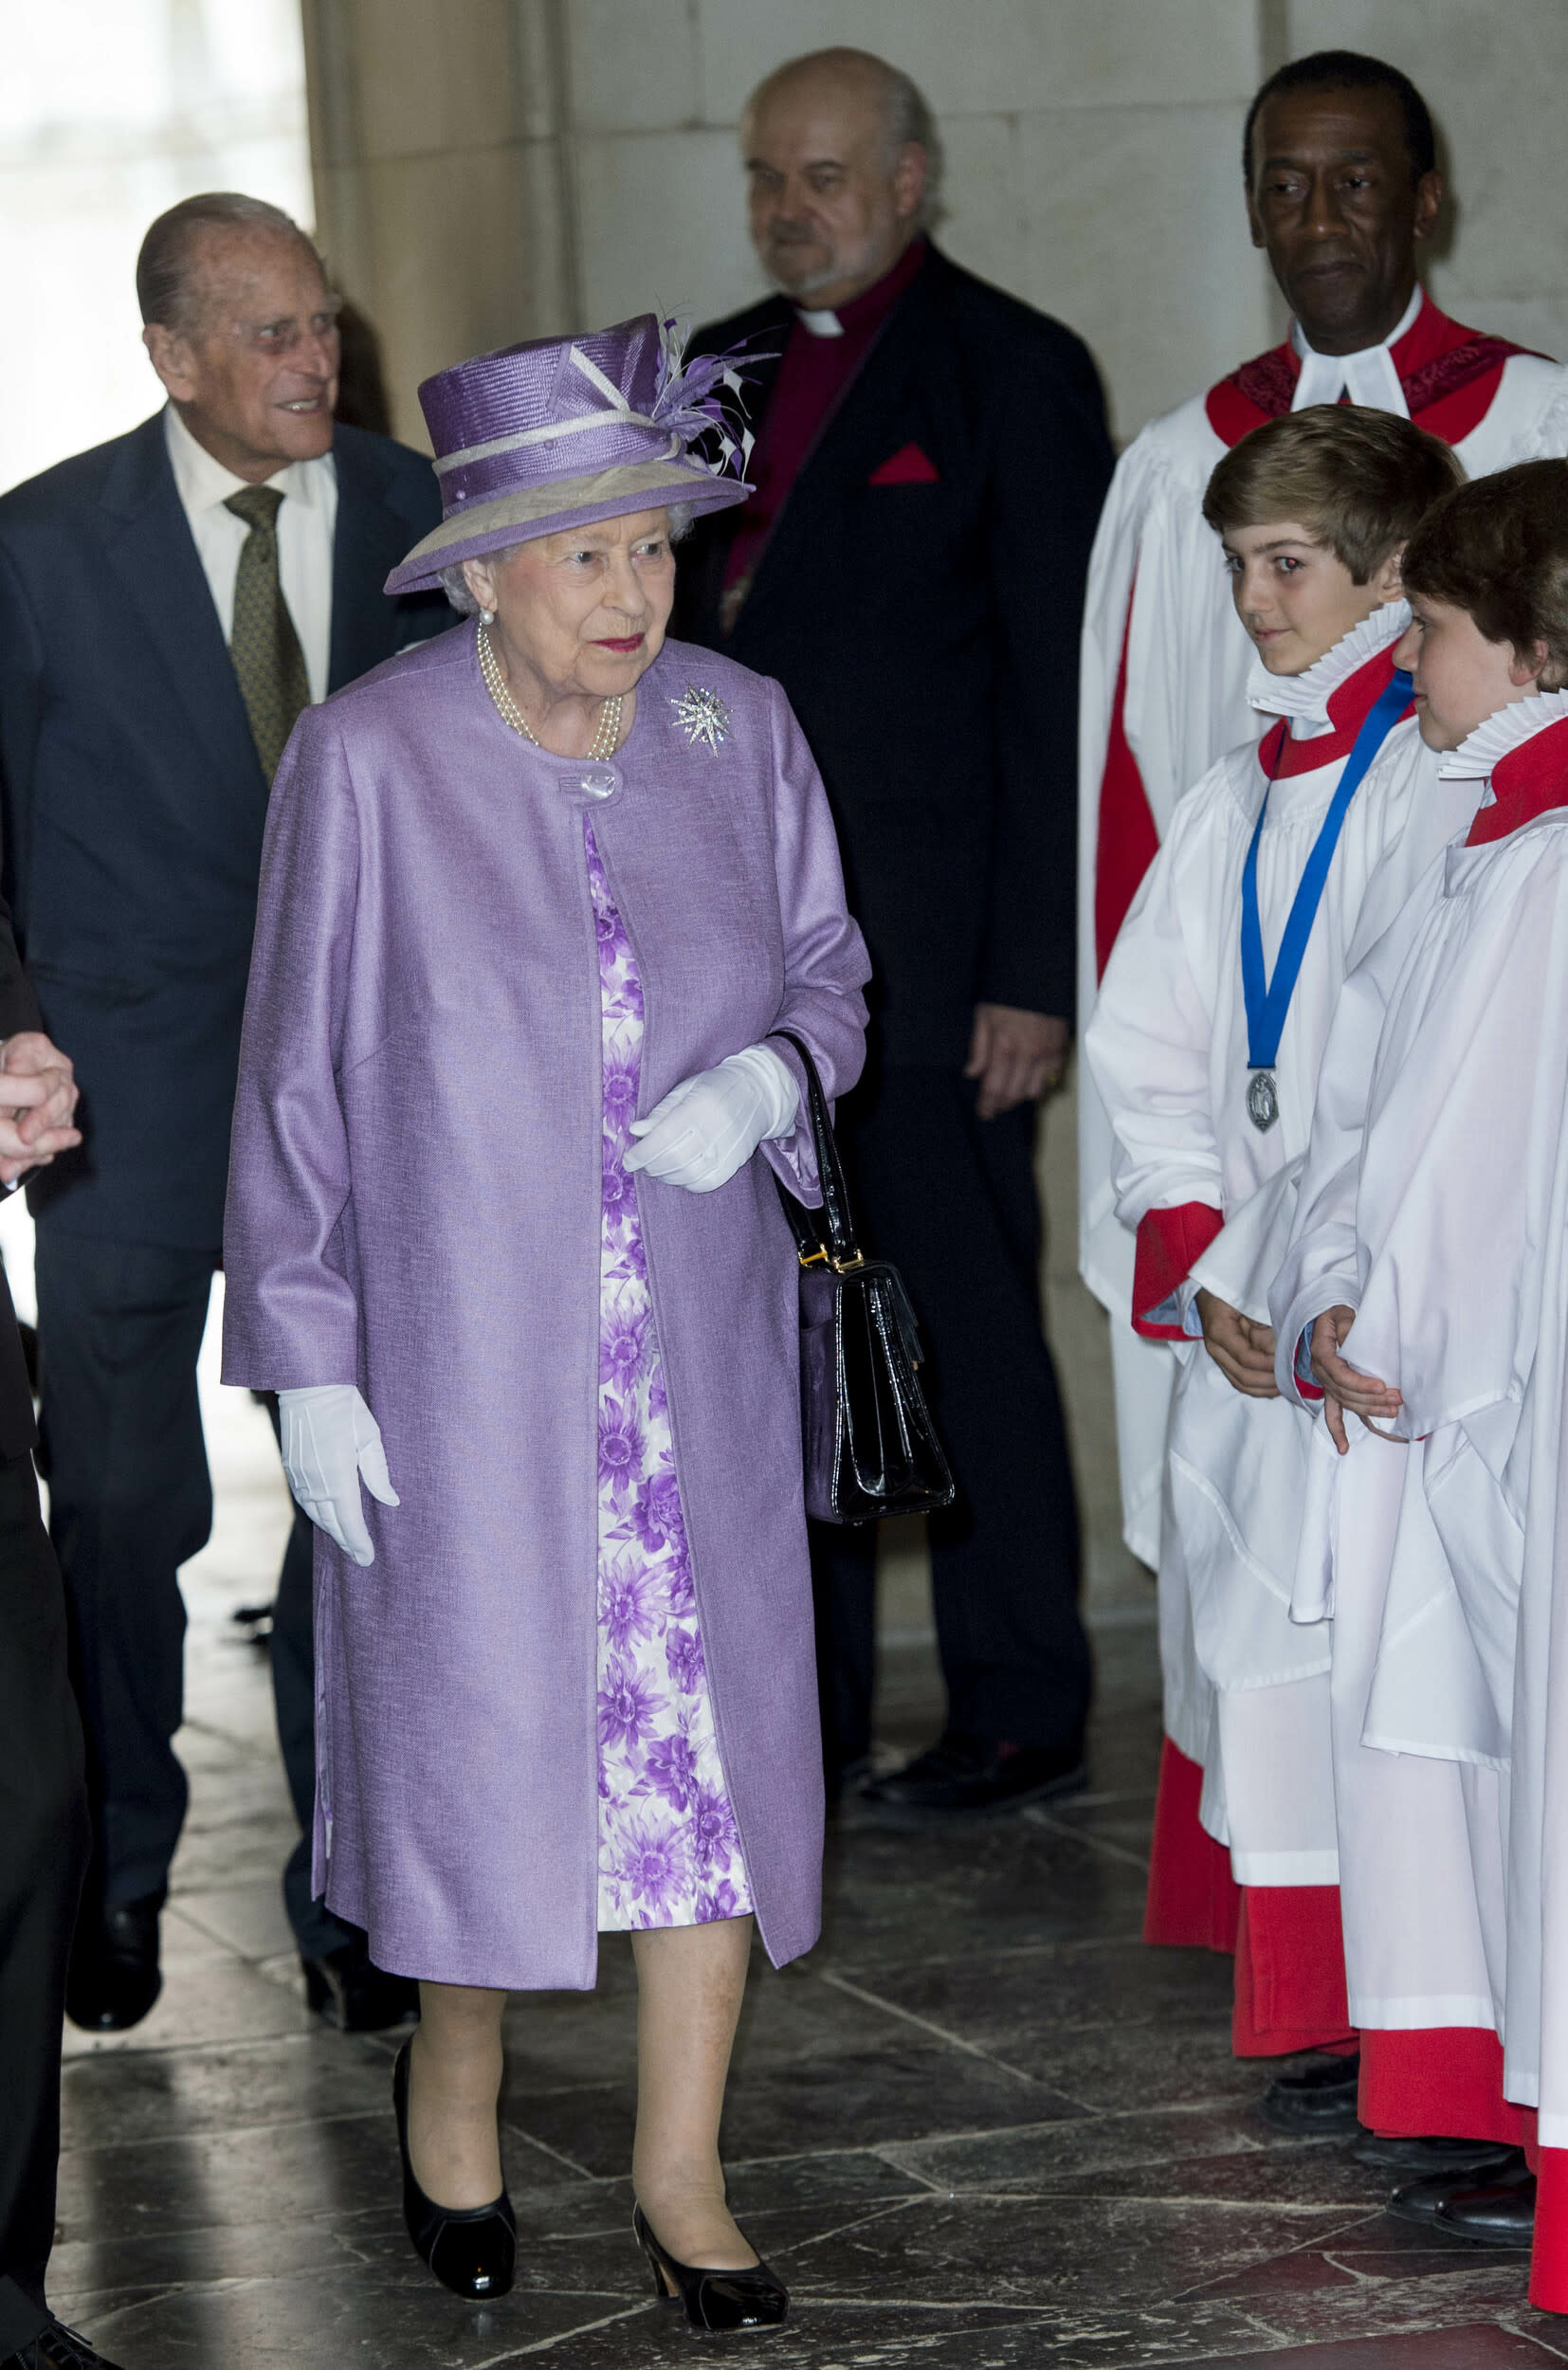 Photo by: KGC-178/starmaxinc.com STAR MAX ©2017 ALL RIGHTS RESERVED Telephone/Fax: (212) 995-1196 6/13/17 Queen Elizabeth II and Prince Philip, Duke of Edinburgh attend Evensong in celebration of the centenary of the Order of the Companions of Honour at Hampton Court Palace in London.